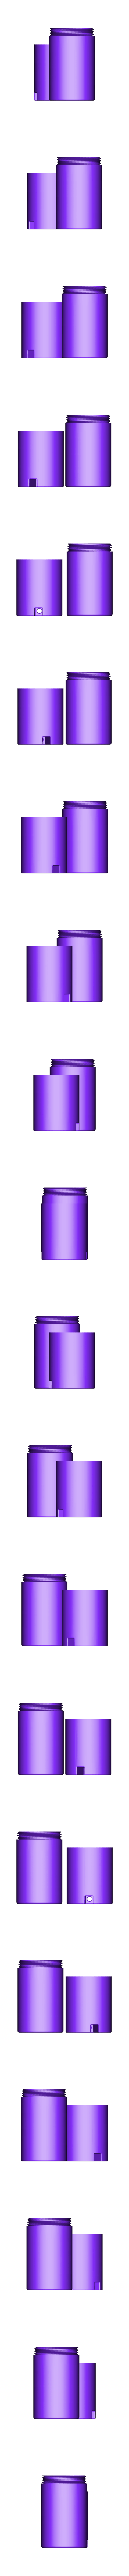 100ml Bottle Holder.stl Download free STL file Threaded Container • Model to 3D print, WW3D